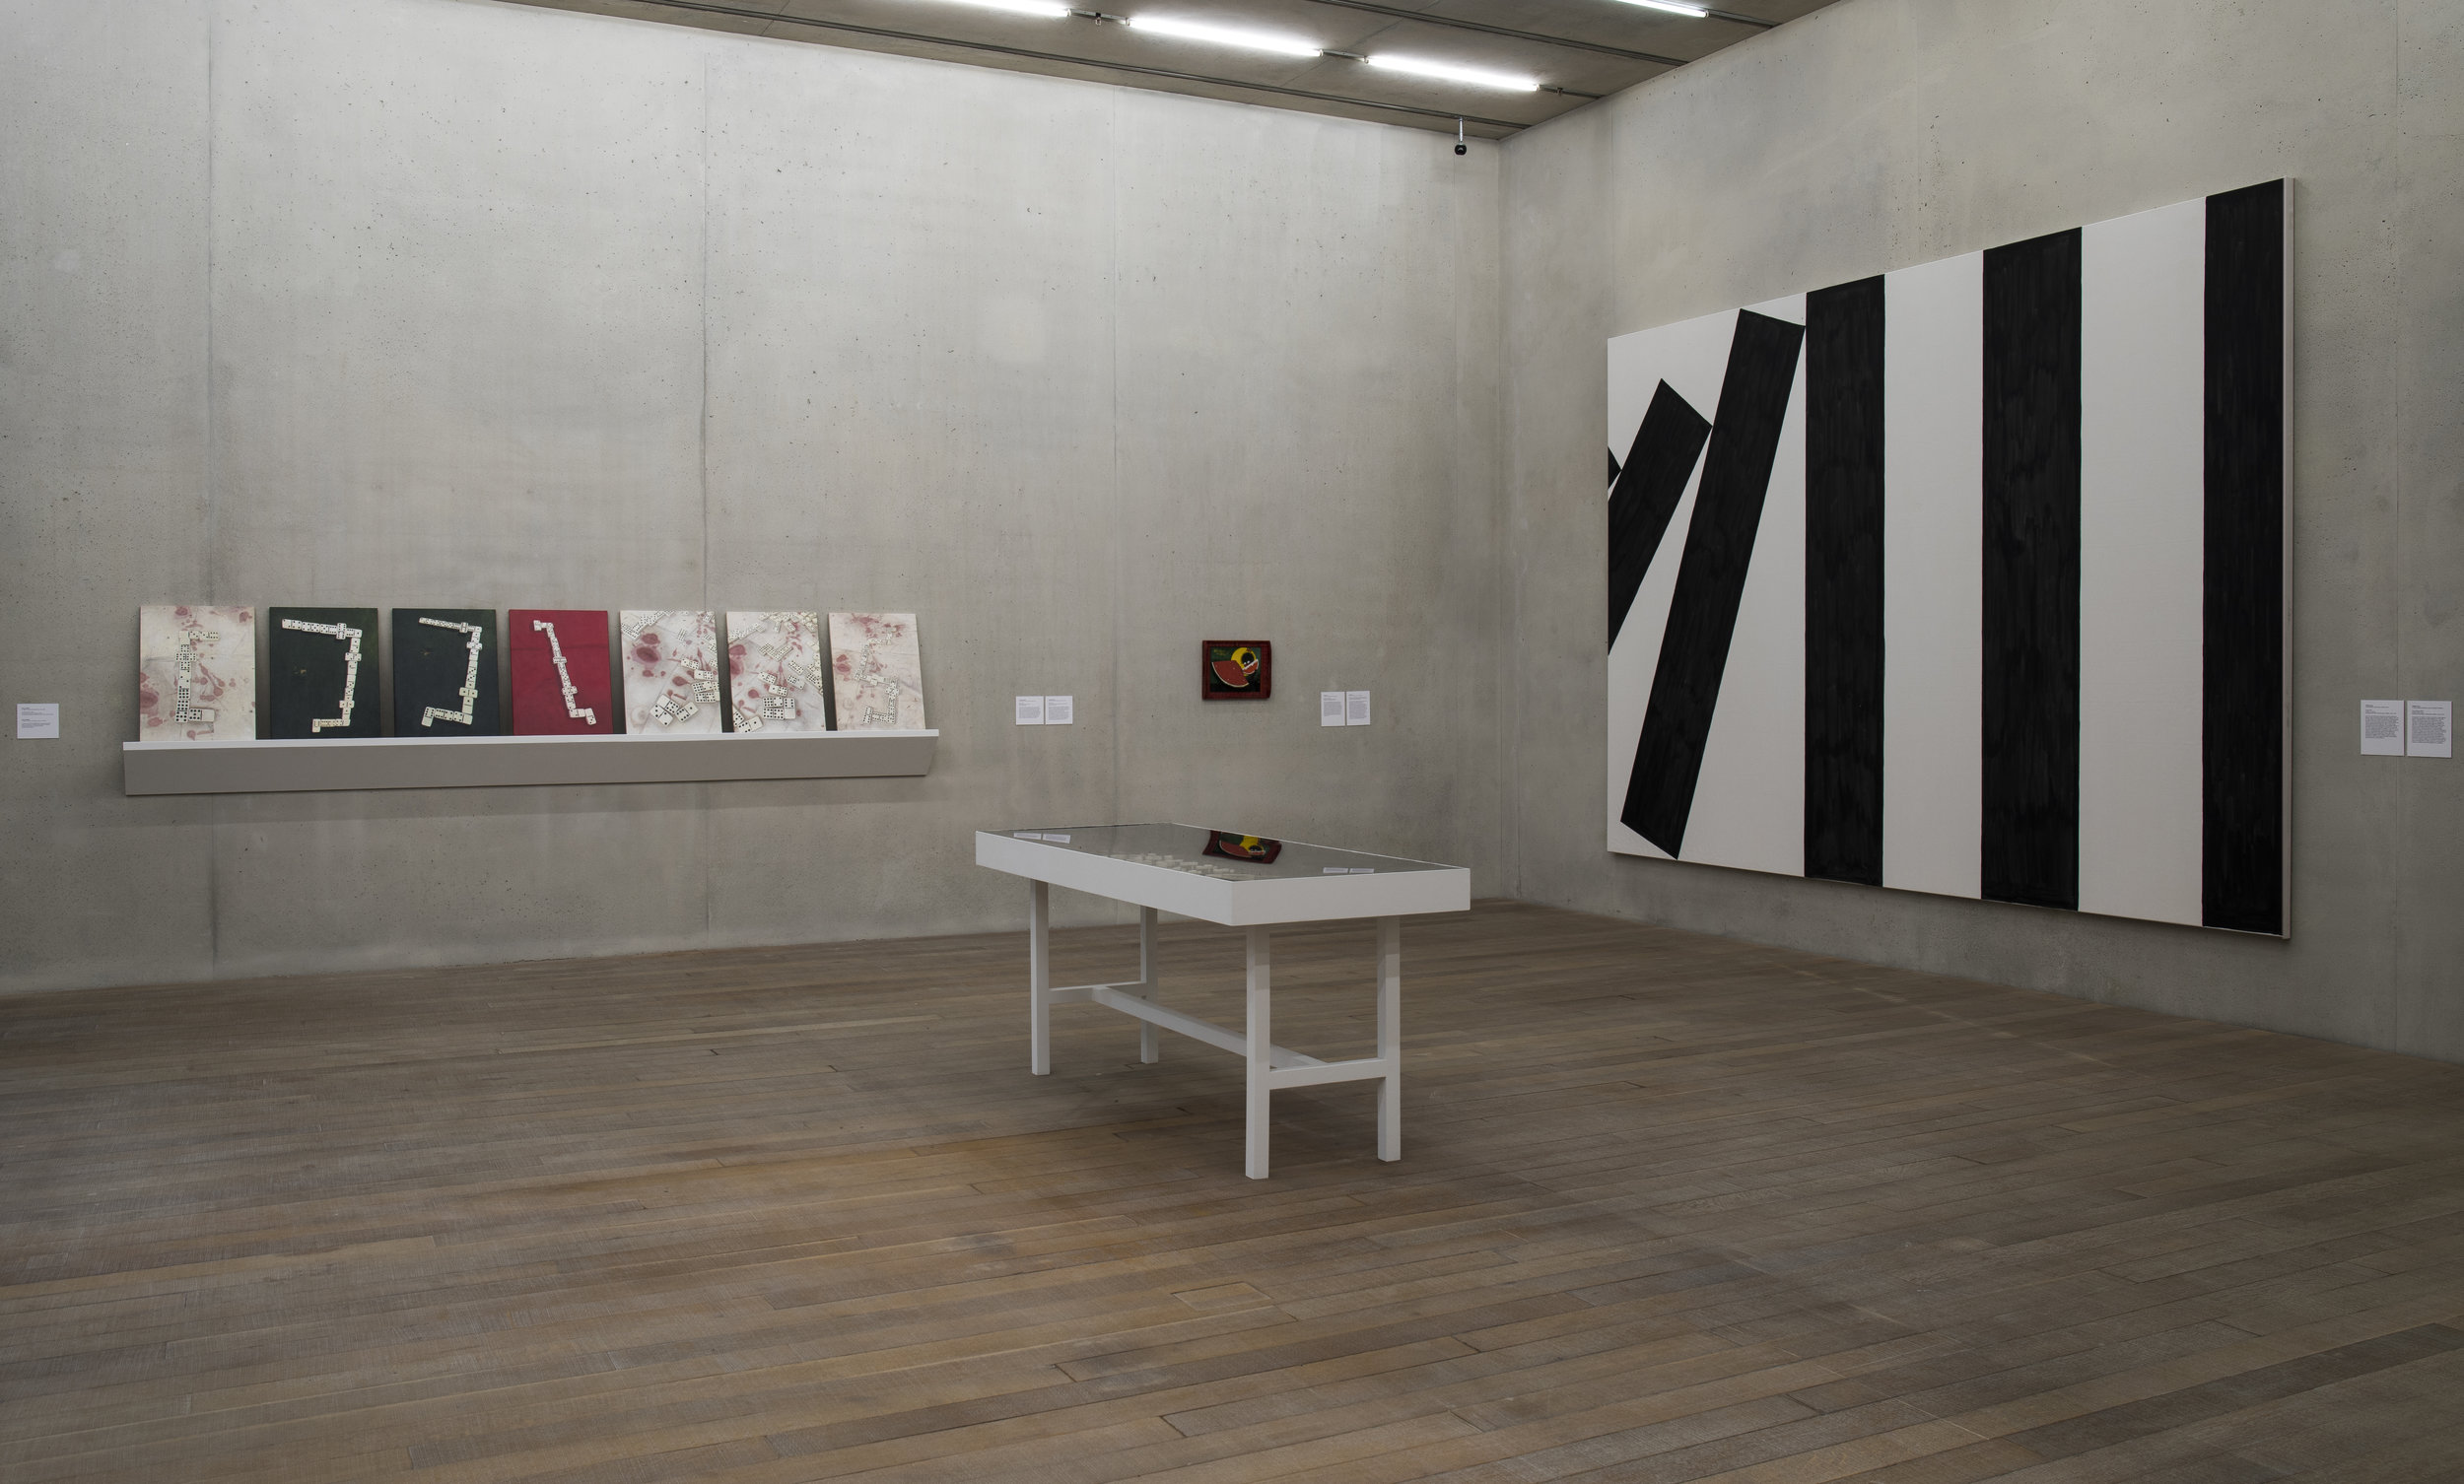 Spots, Dots, Pips, Tiles at PAMM: exhibition view